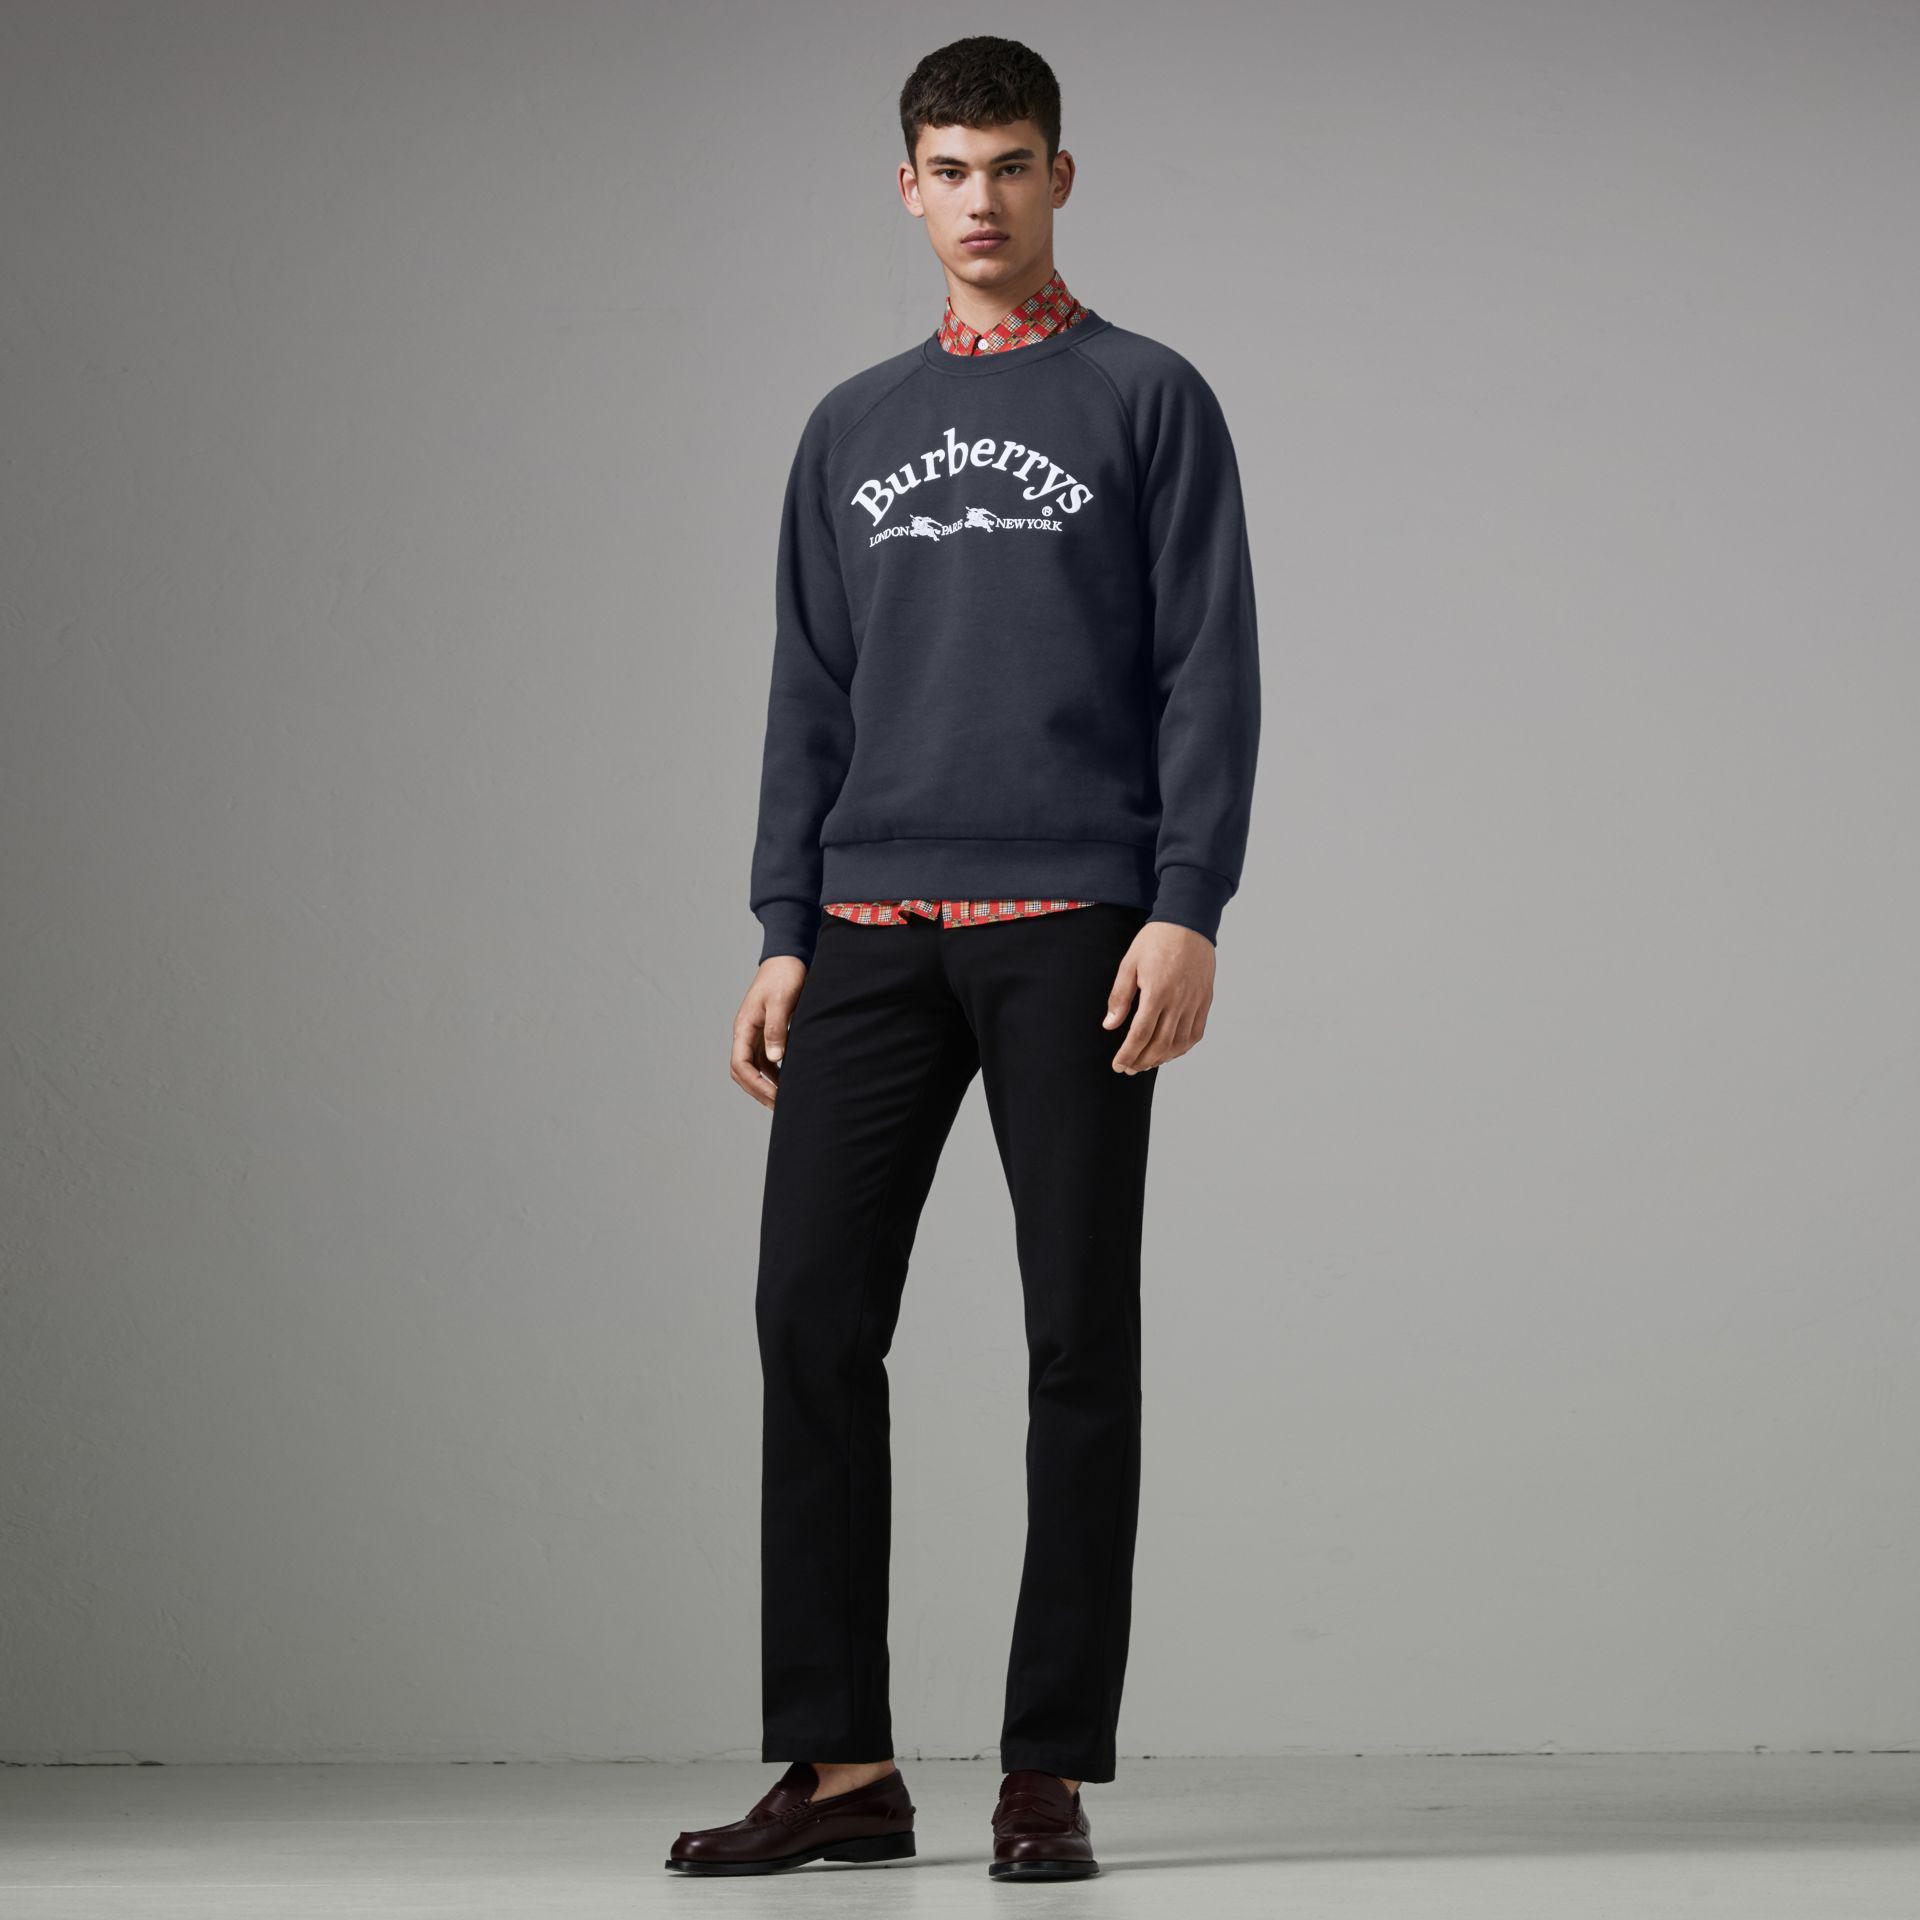 ee441e86727 Lyst - Burberry Embroidered Archive Logo Jersey Sweatshirt in Blue ...